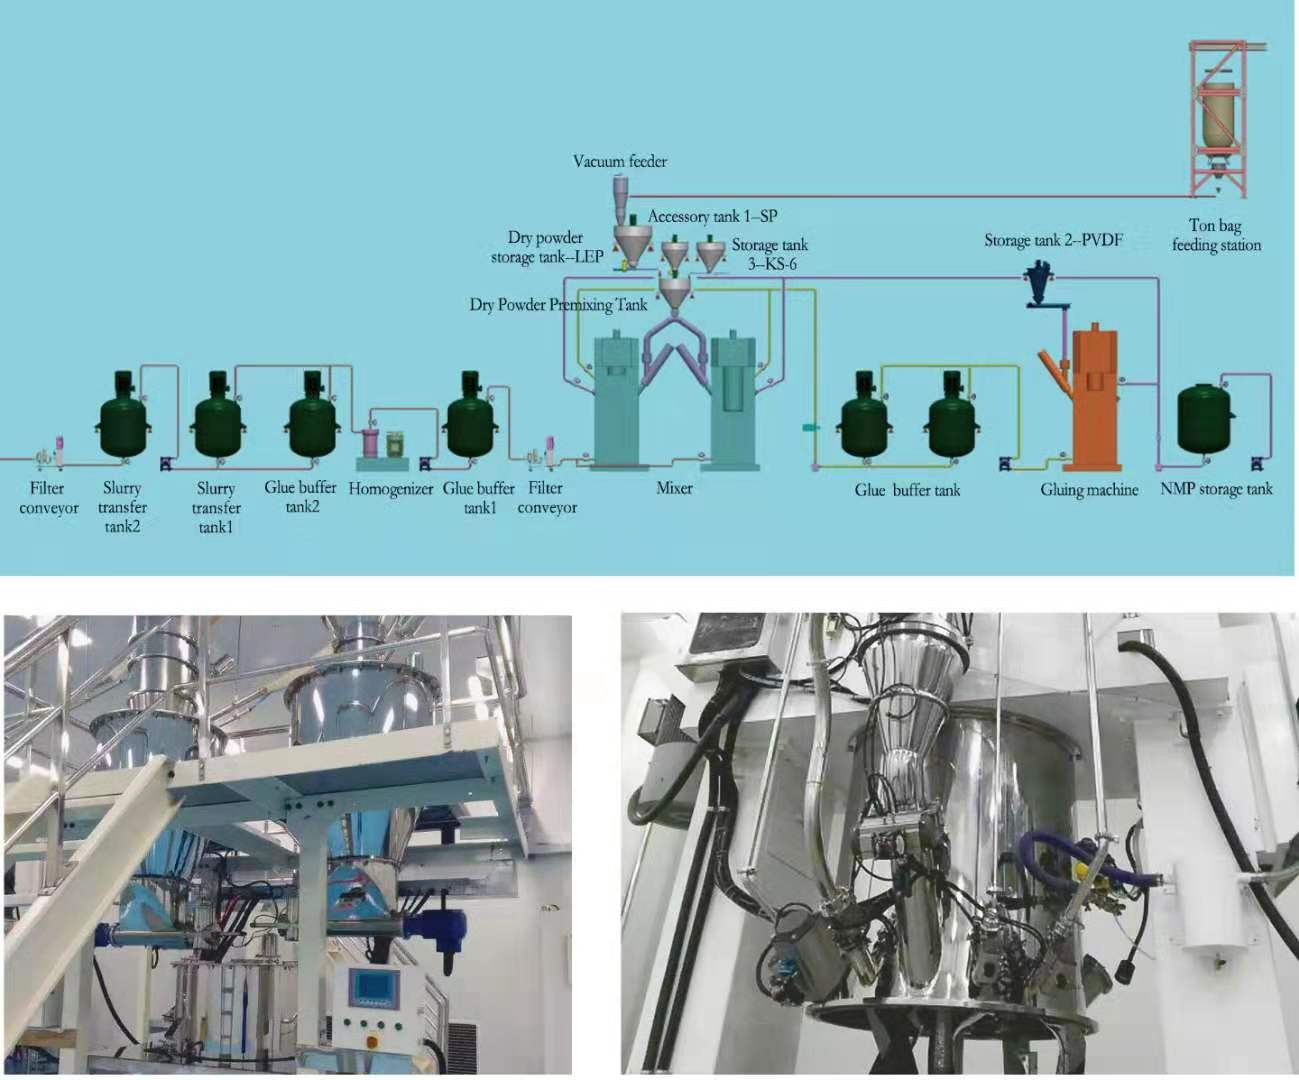 Lithium-ion Battery Automatic Batching System Manufacturers, Lithium-ion Battery Automatic Batching System Factory, Supply Lithium-ion Battery Automatic Batching System